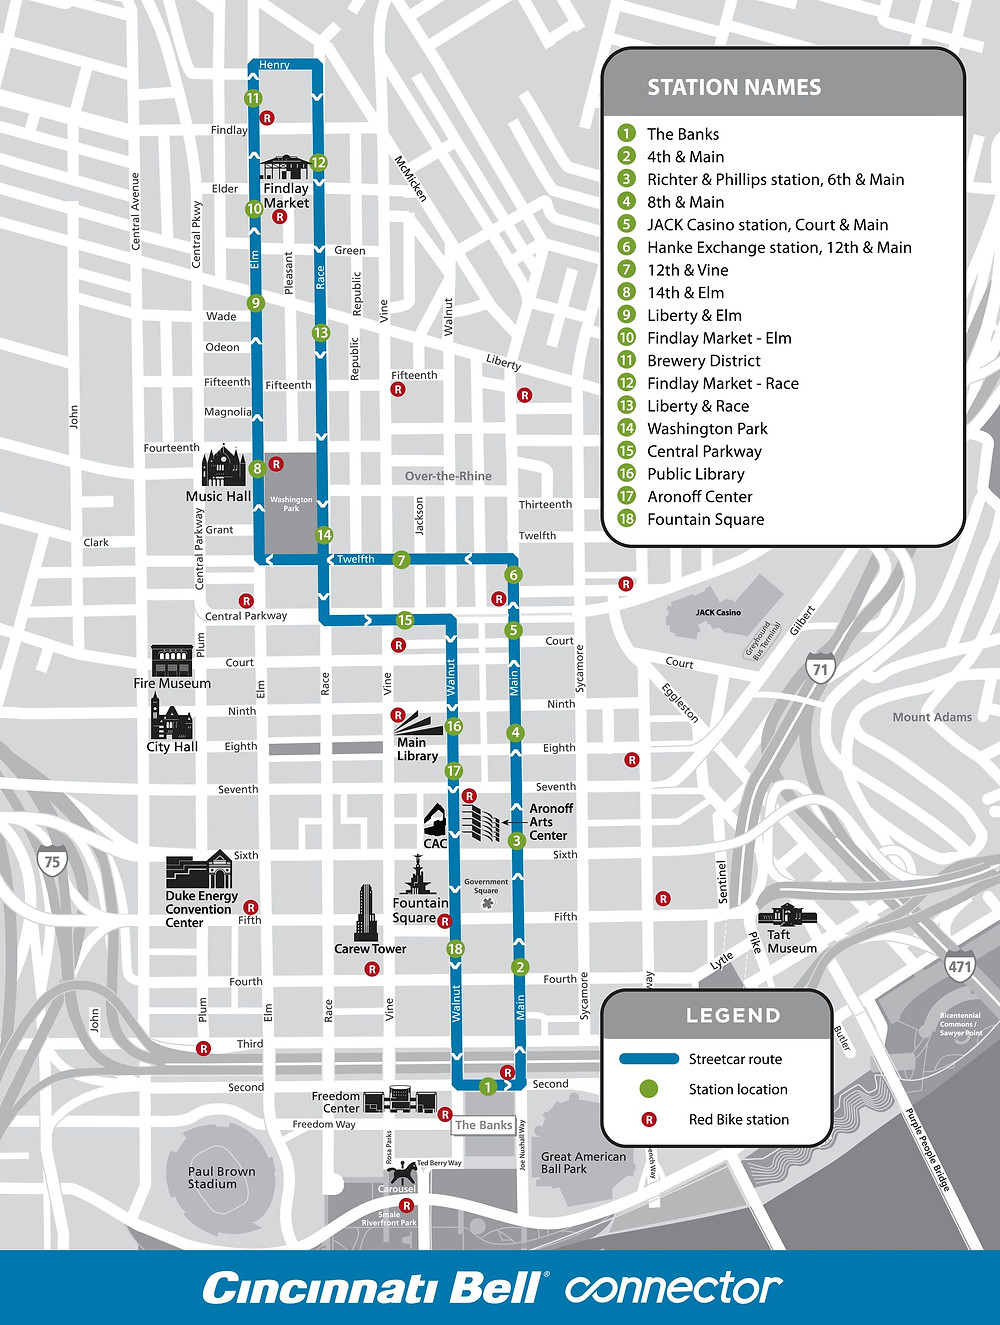 Map of street car route